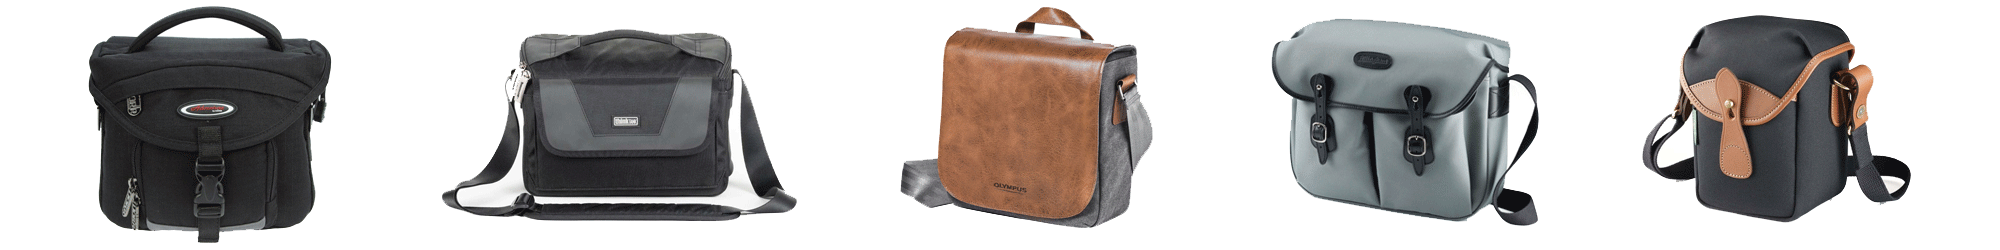 Range of camera bags by Harrison Cameras